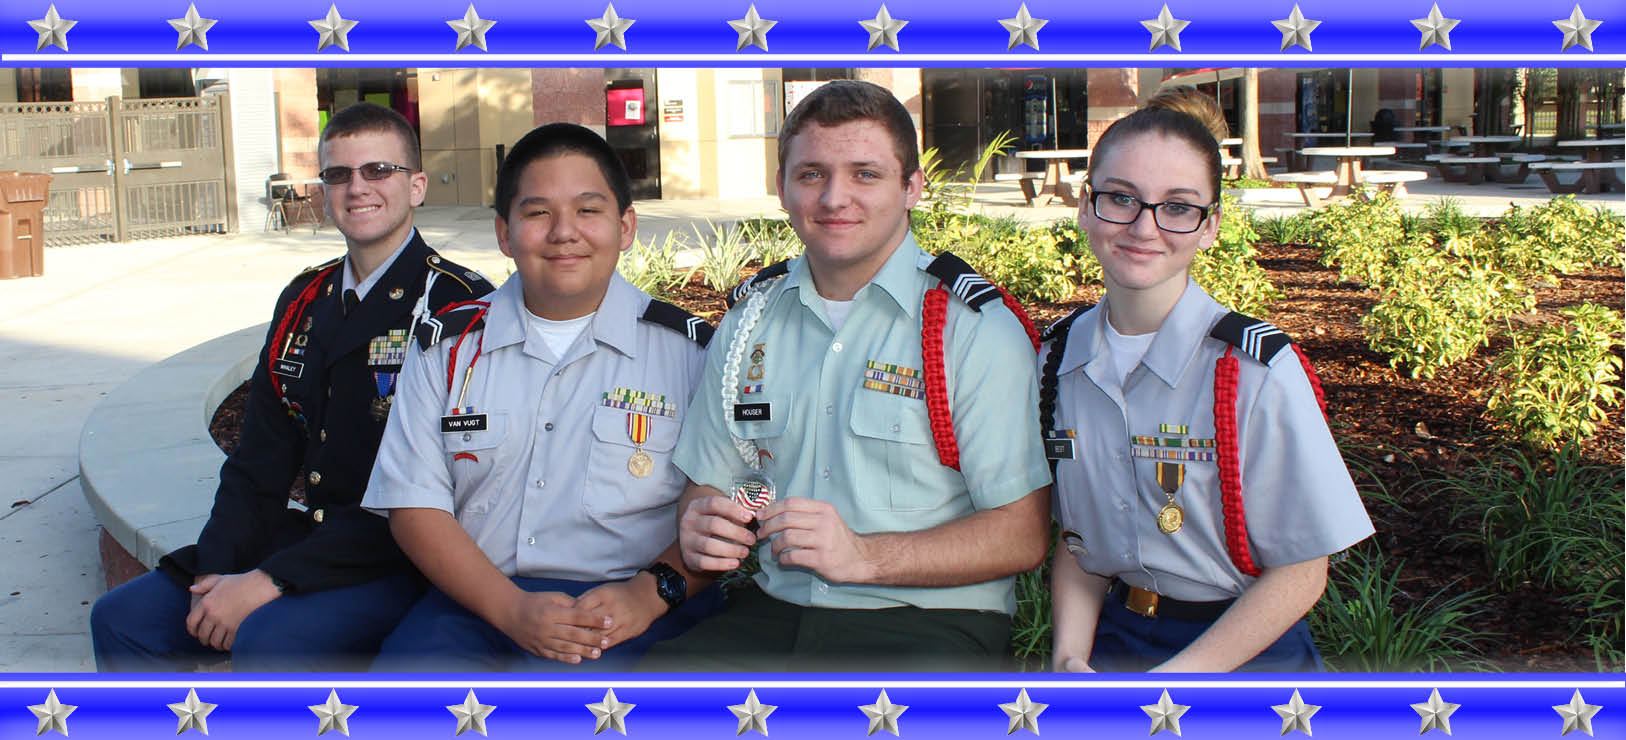 Image for Strawberry Crest JROTC: Pride and Patriotism in action